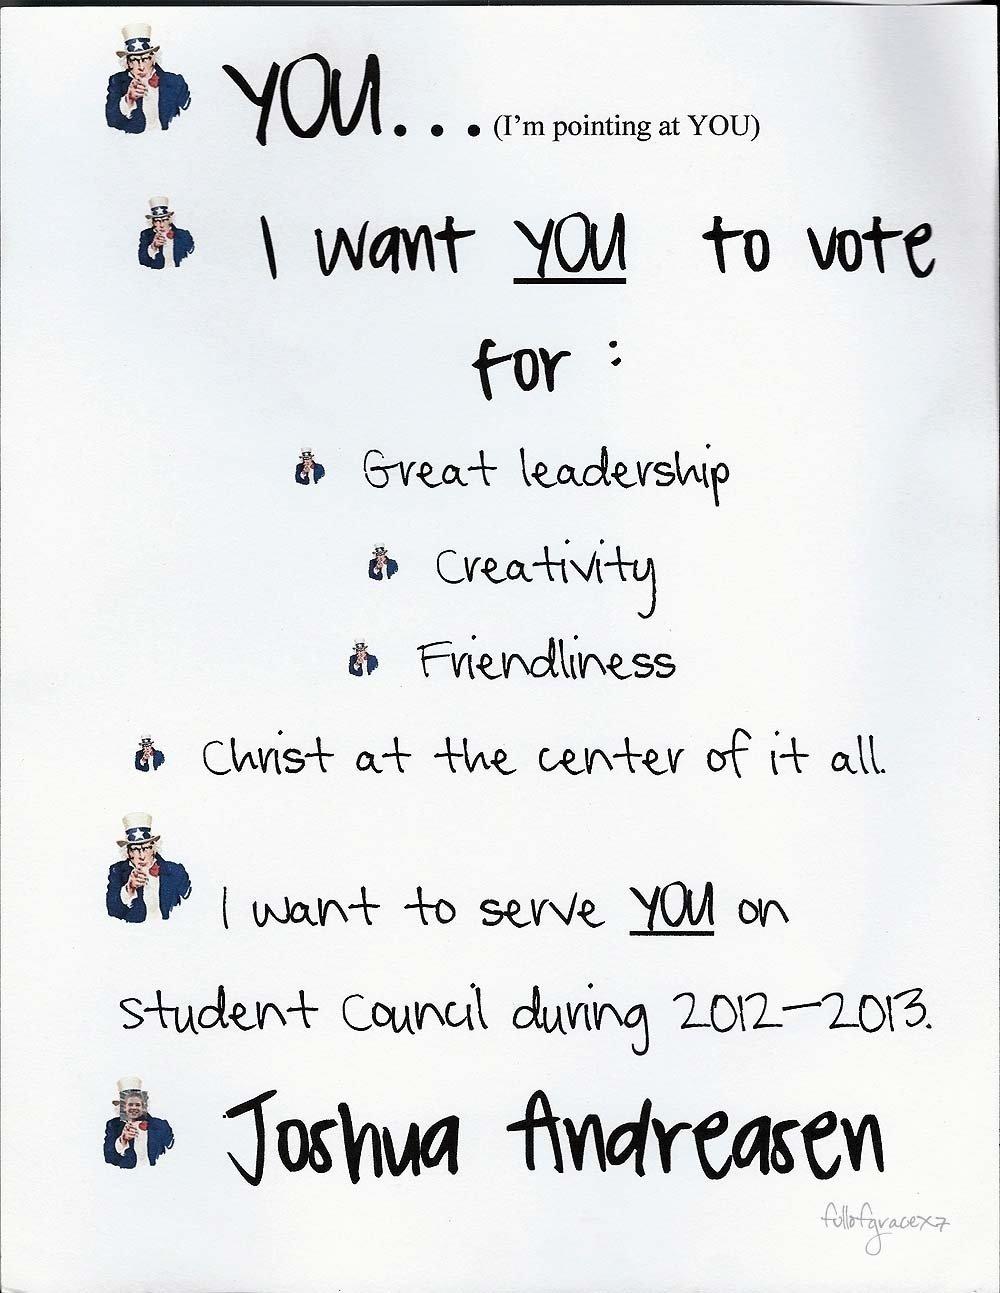 10 Beautiful Creative Student Council Speech Ideas election year 2020